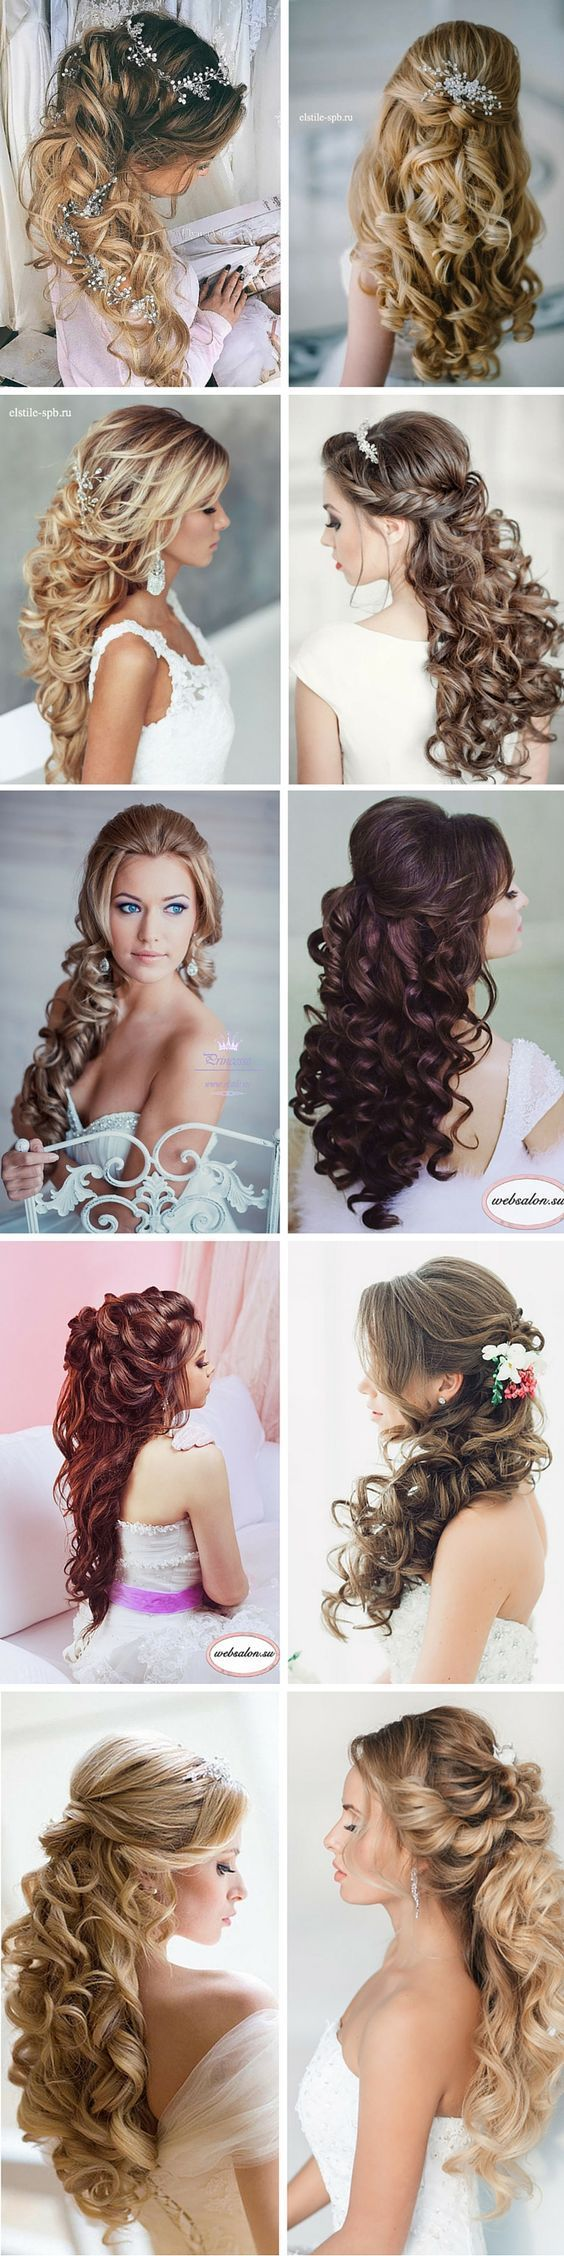 best 25+ romantic wedding hairstyles ideas on pinterest | wedding